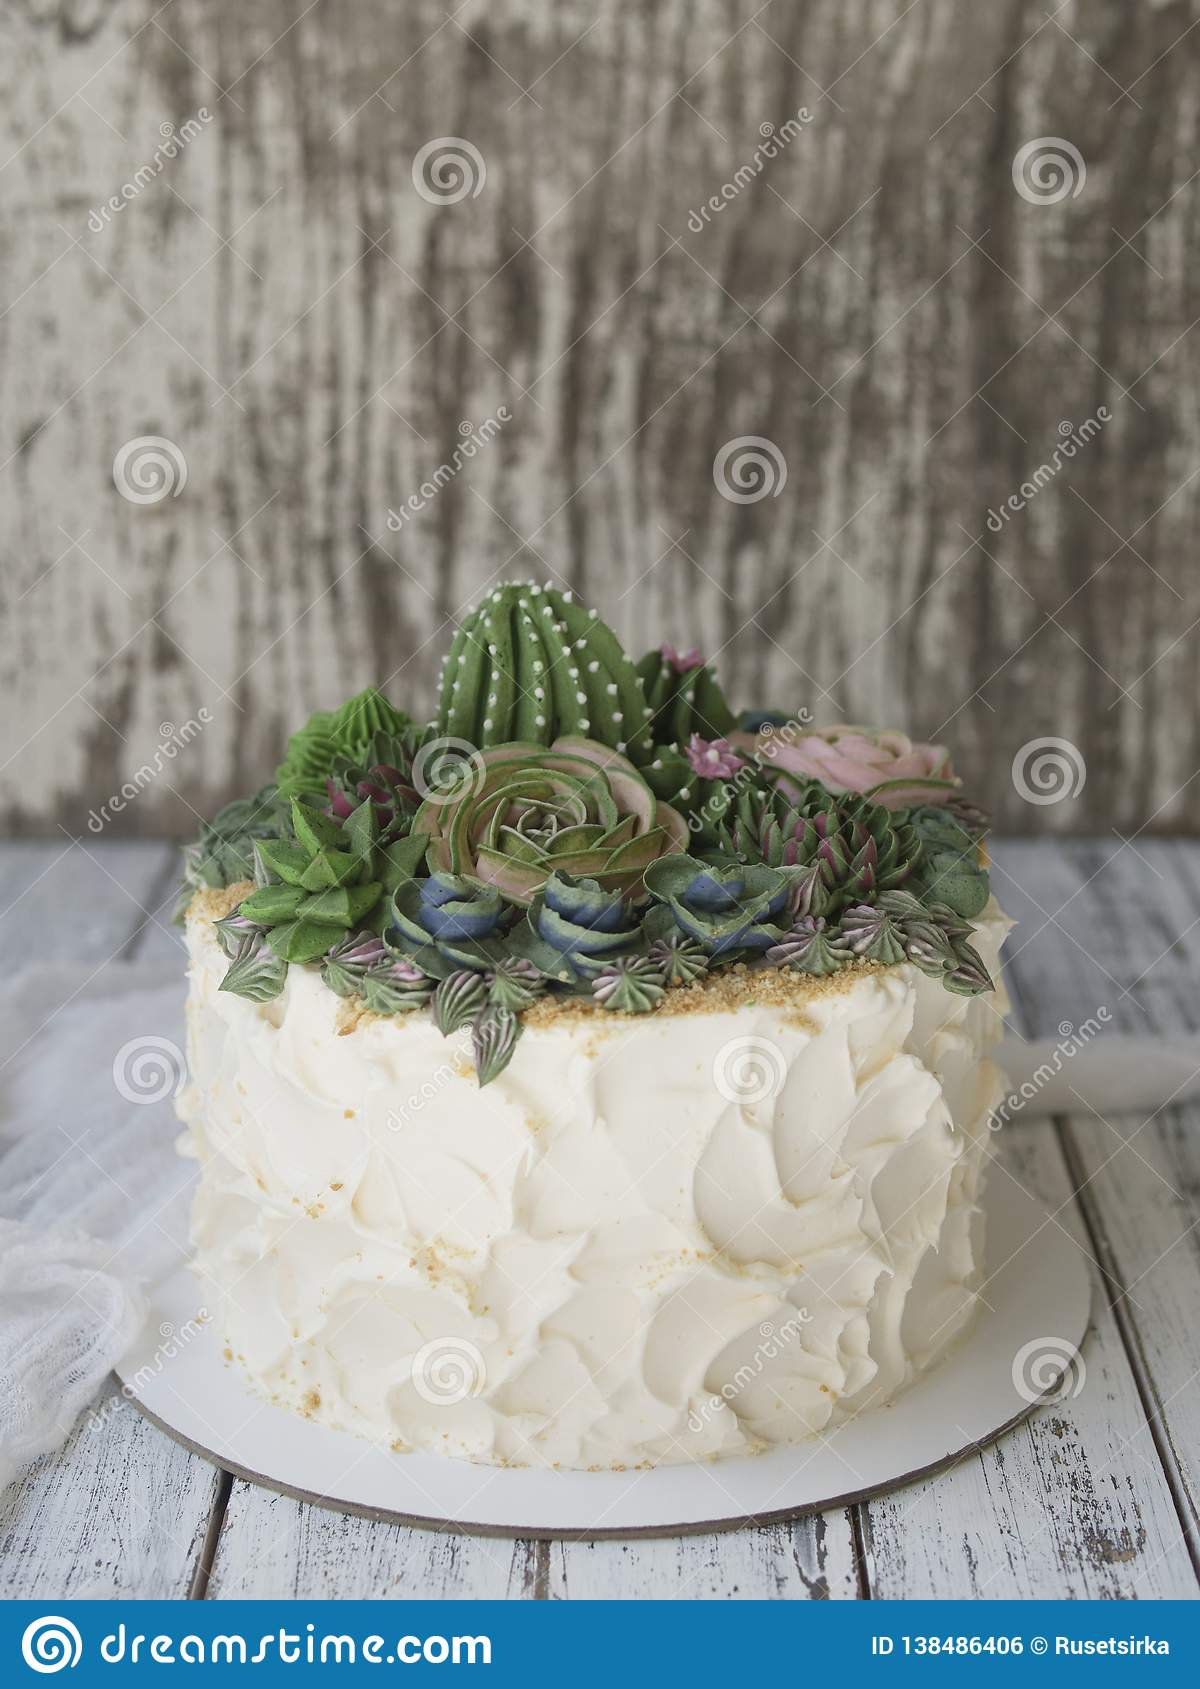 Cake Decorated With Creamy Succulents On A Wooden Background With White Fabric Copy Space Close Up Top View Stock Photo Image Of Creative Muffin 138486406